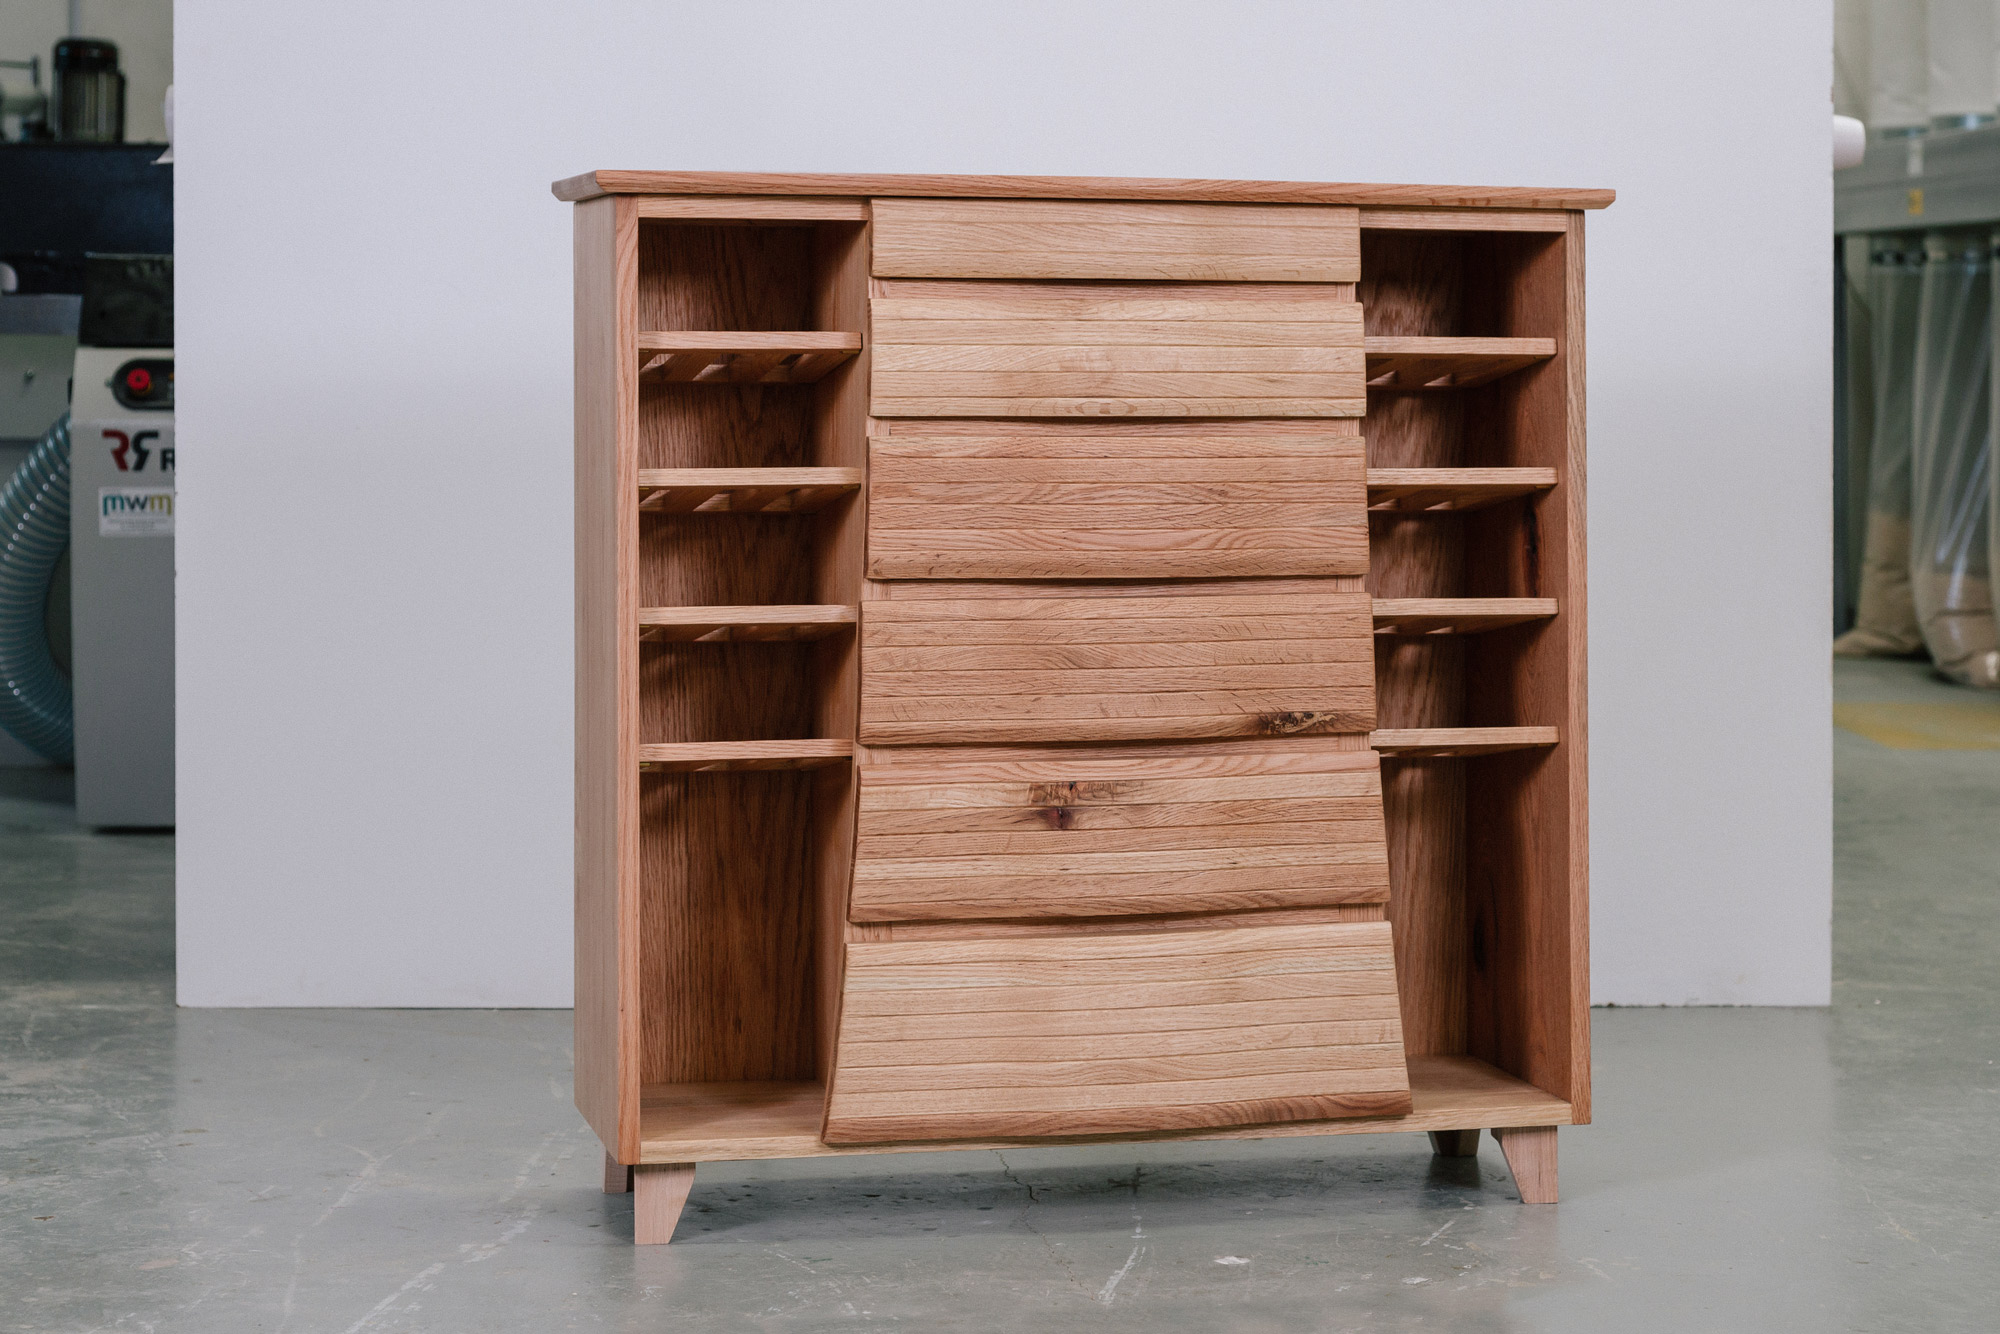 RYCOTEWOOD FURNITURE FOR SUSTAINABLE STORAGE SOLUTIONS